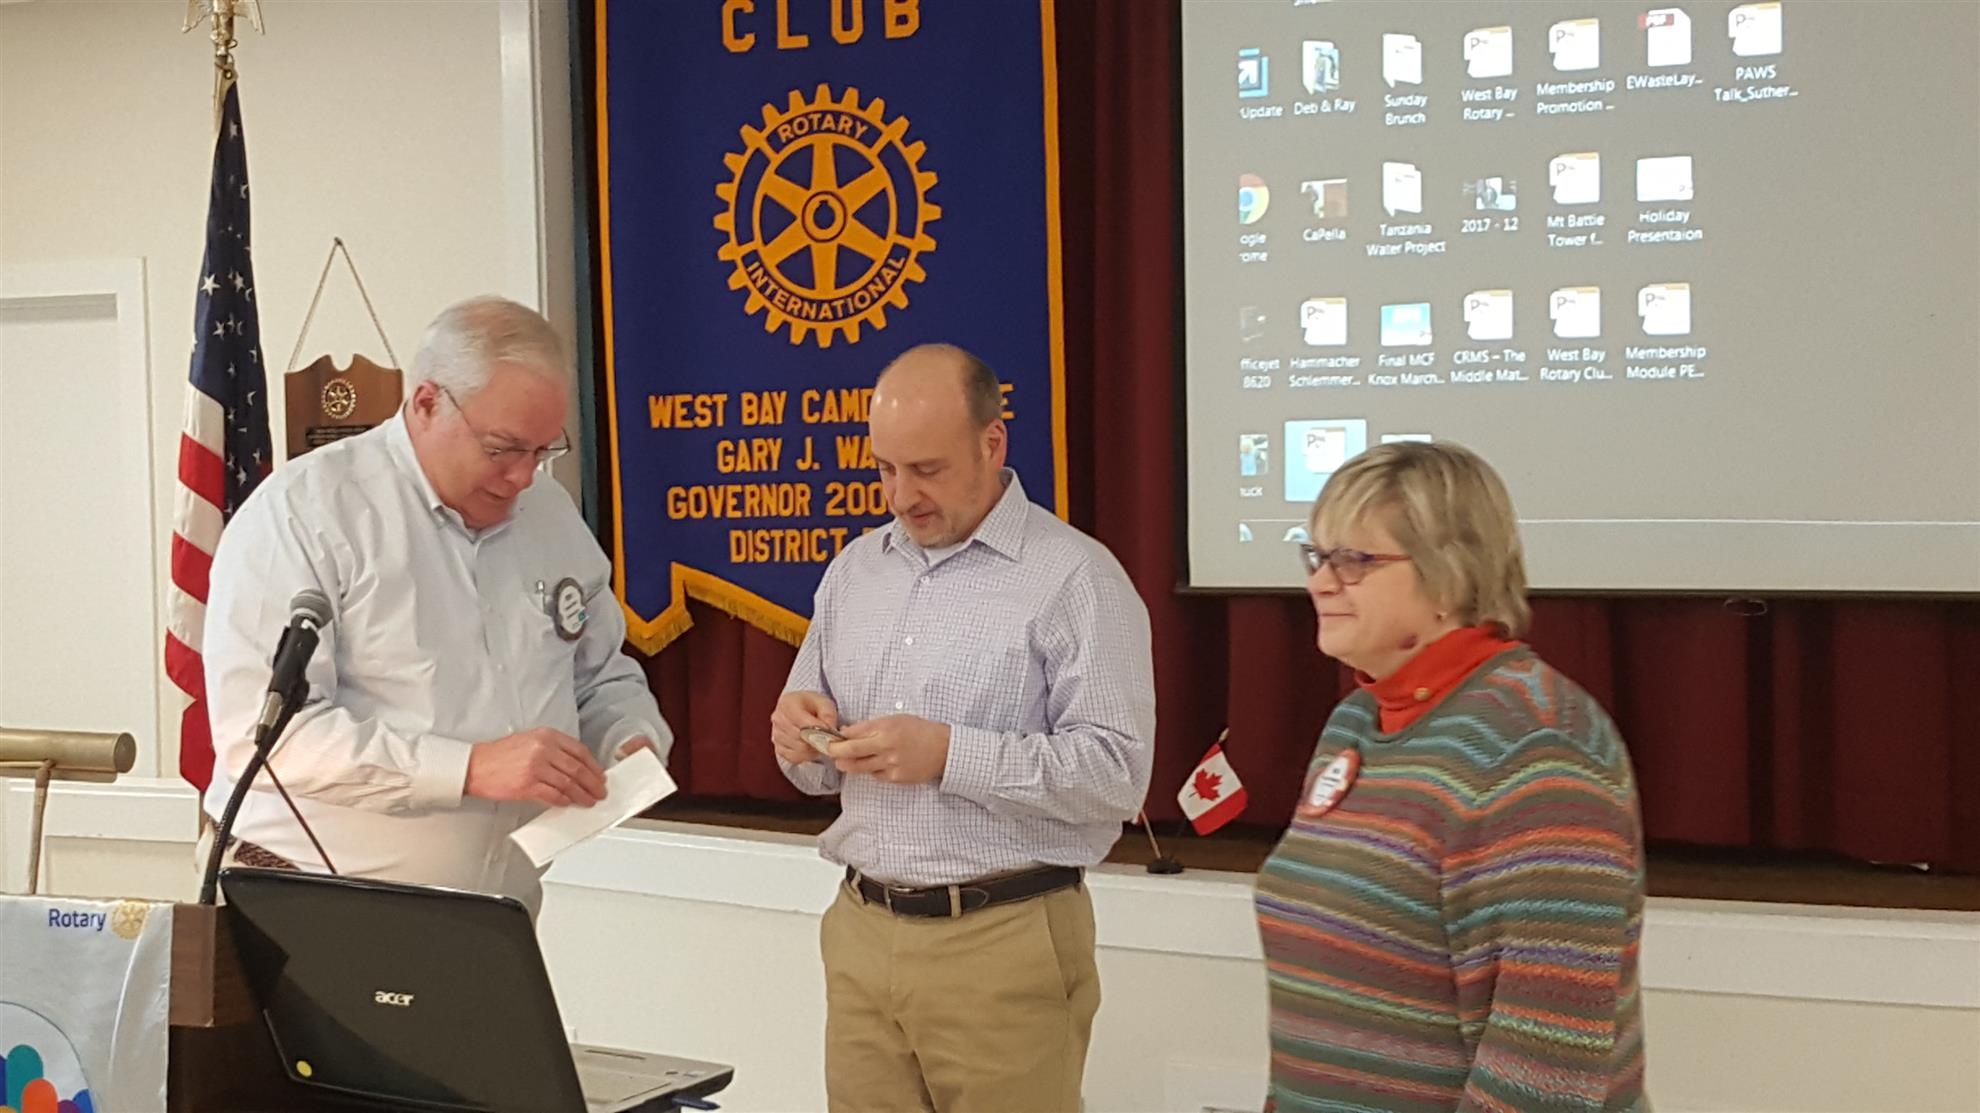 Etienne Perret received a new Paul Harris award with 3 rubies indicating  his multiple gifts of $1,000 to the Rotary Foundation.